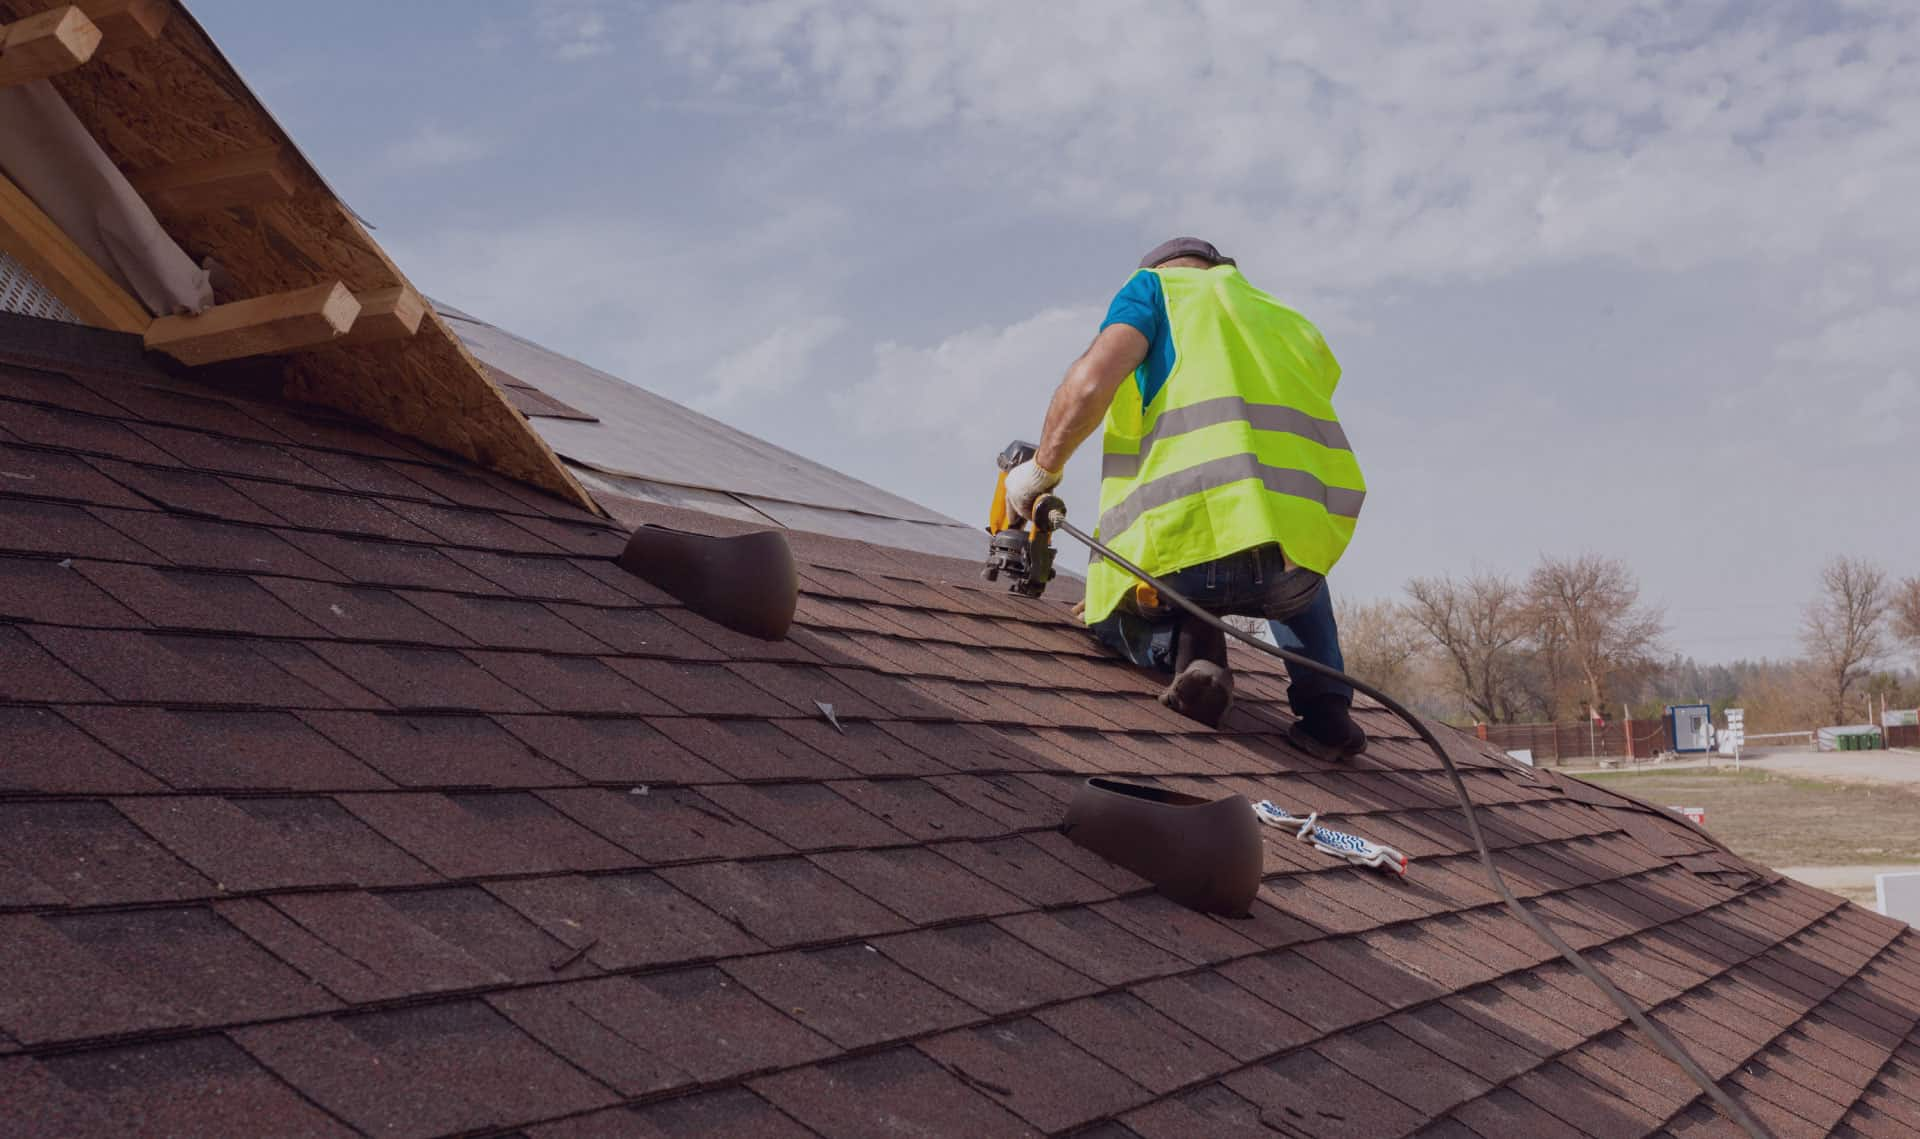 Man on a San Antonio roofinh system performing repair | WeatherTech Roofing San Antonio Roofer Contractor Company Residential and Commercial